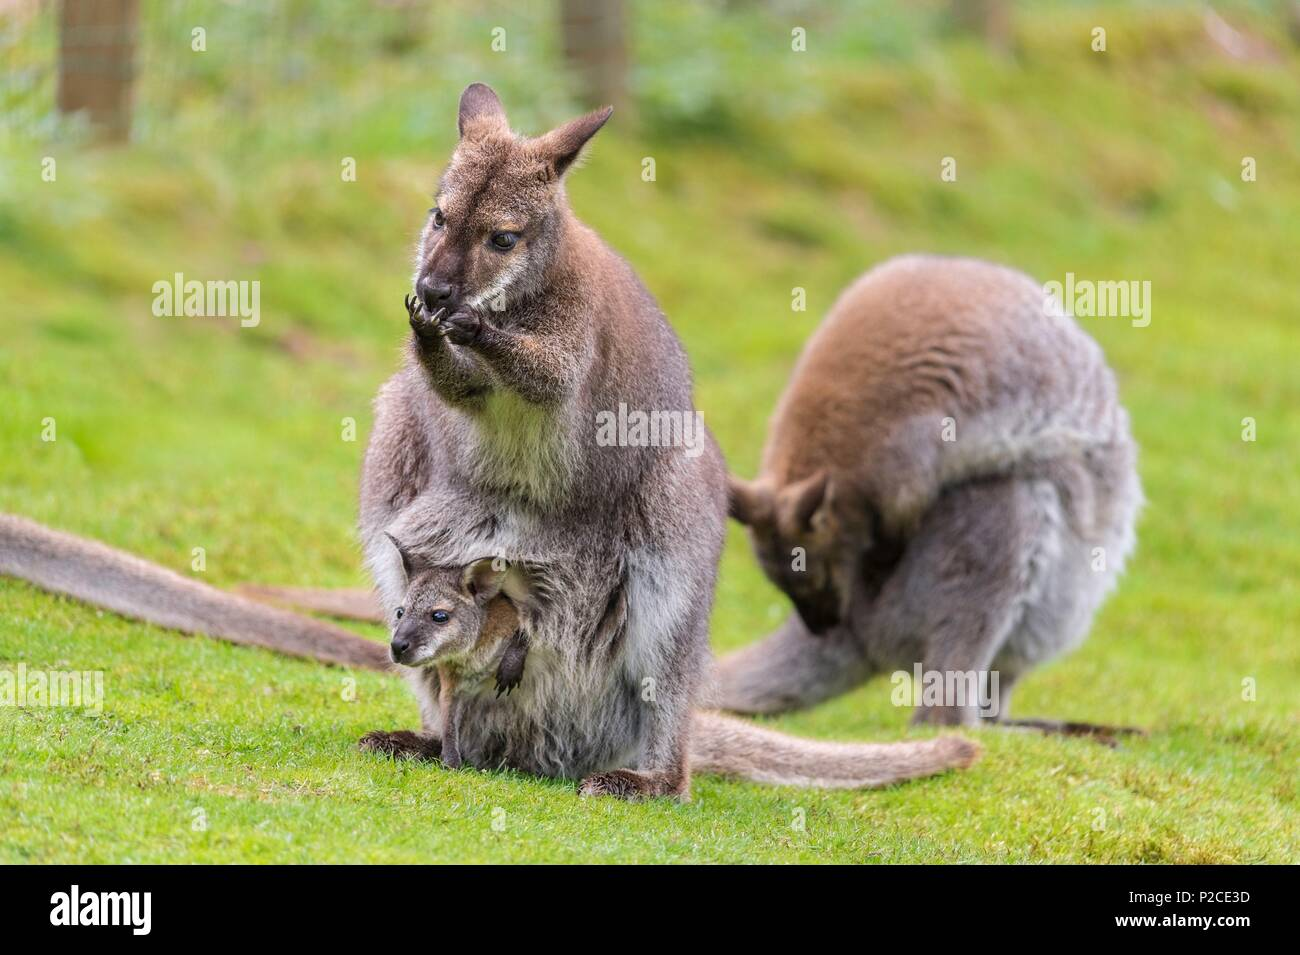 France, Sarthe, La Fleche, La Fleche Zoo, Wallabies of Bennett subspecies of the Red-necked Wallaby (Macropus rufogriseus)otection status, Unprotected species, IUCN status, Least Concern (LR / Ic) - Stock Image